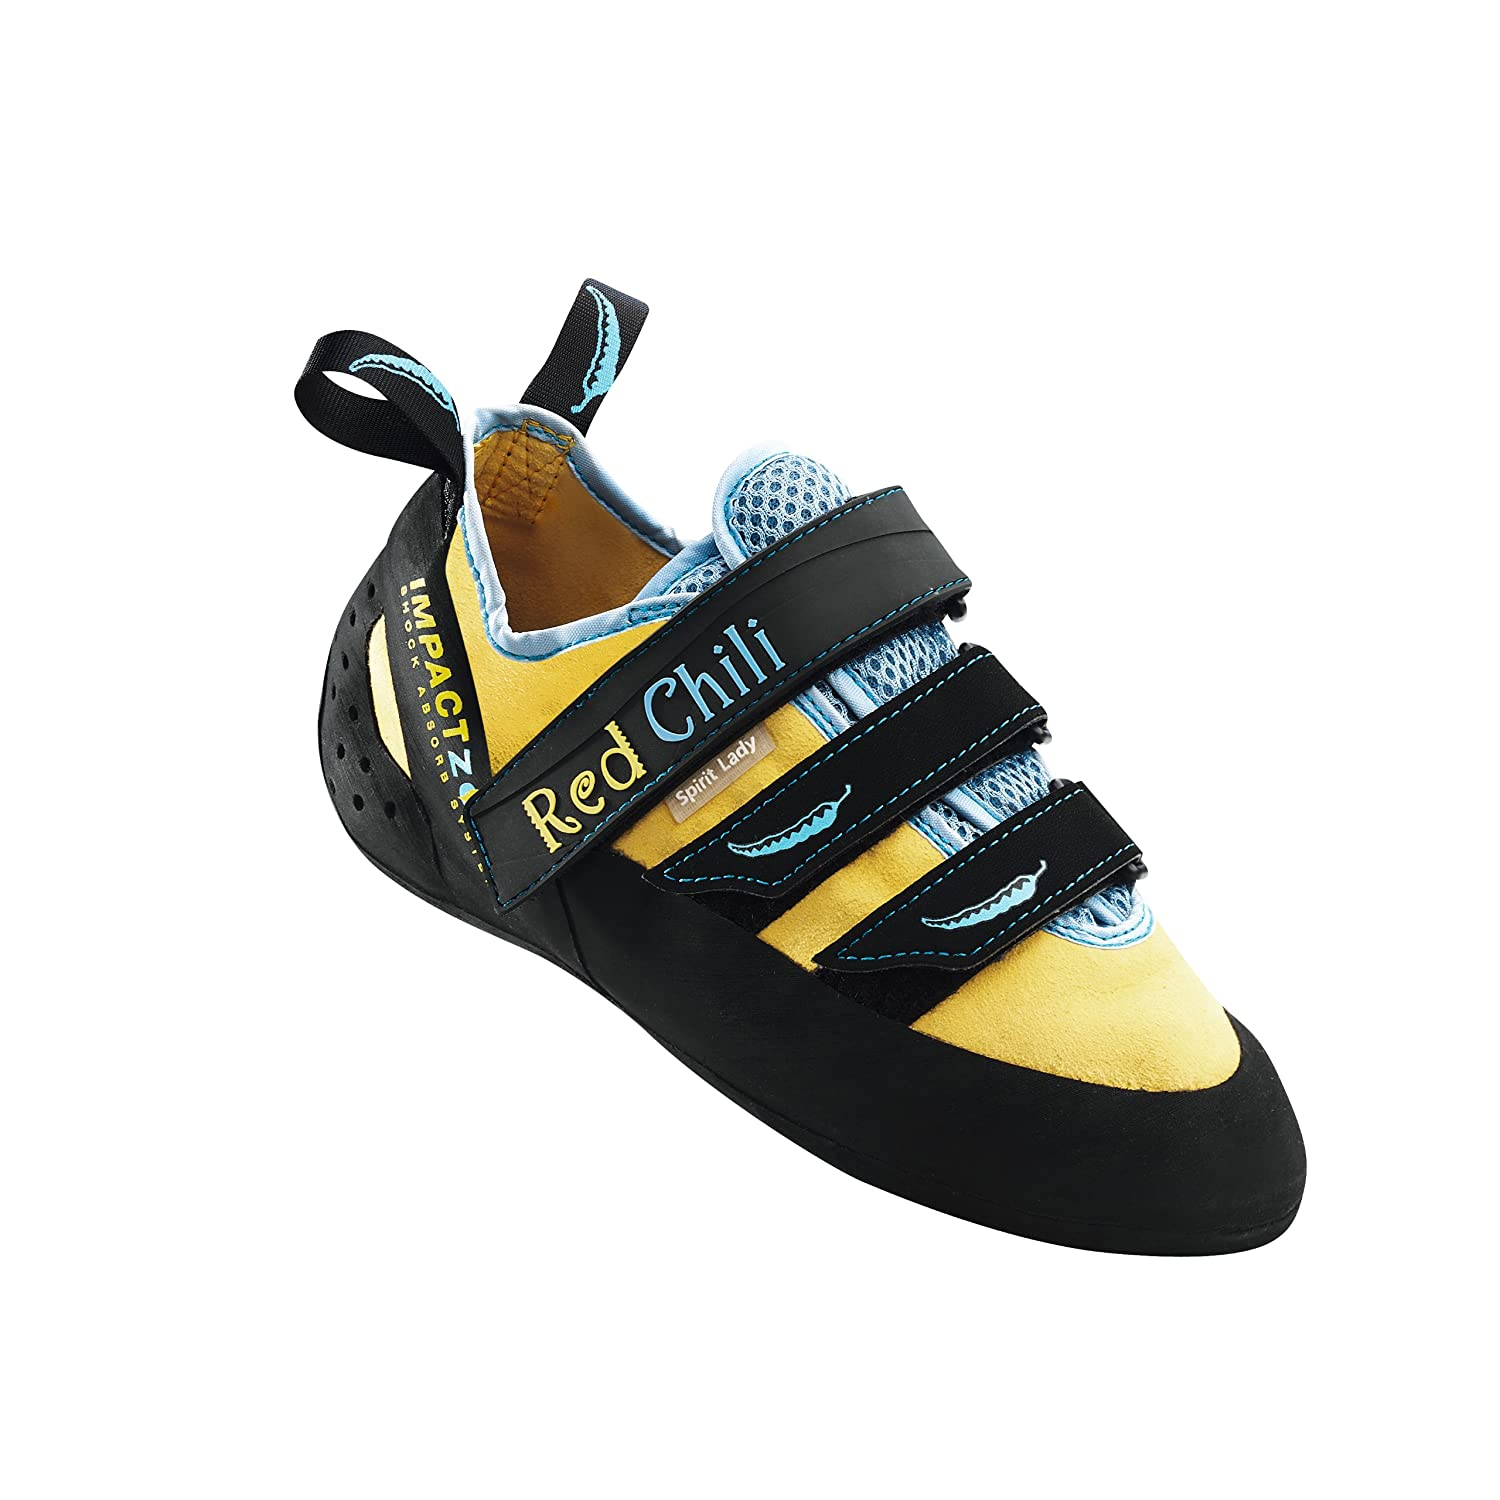 Red Chili Spirit Impact Zone Climbing Shoe - Women's